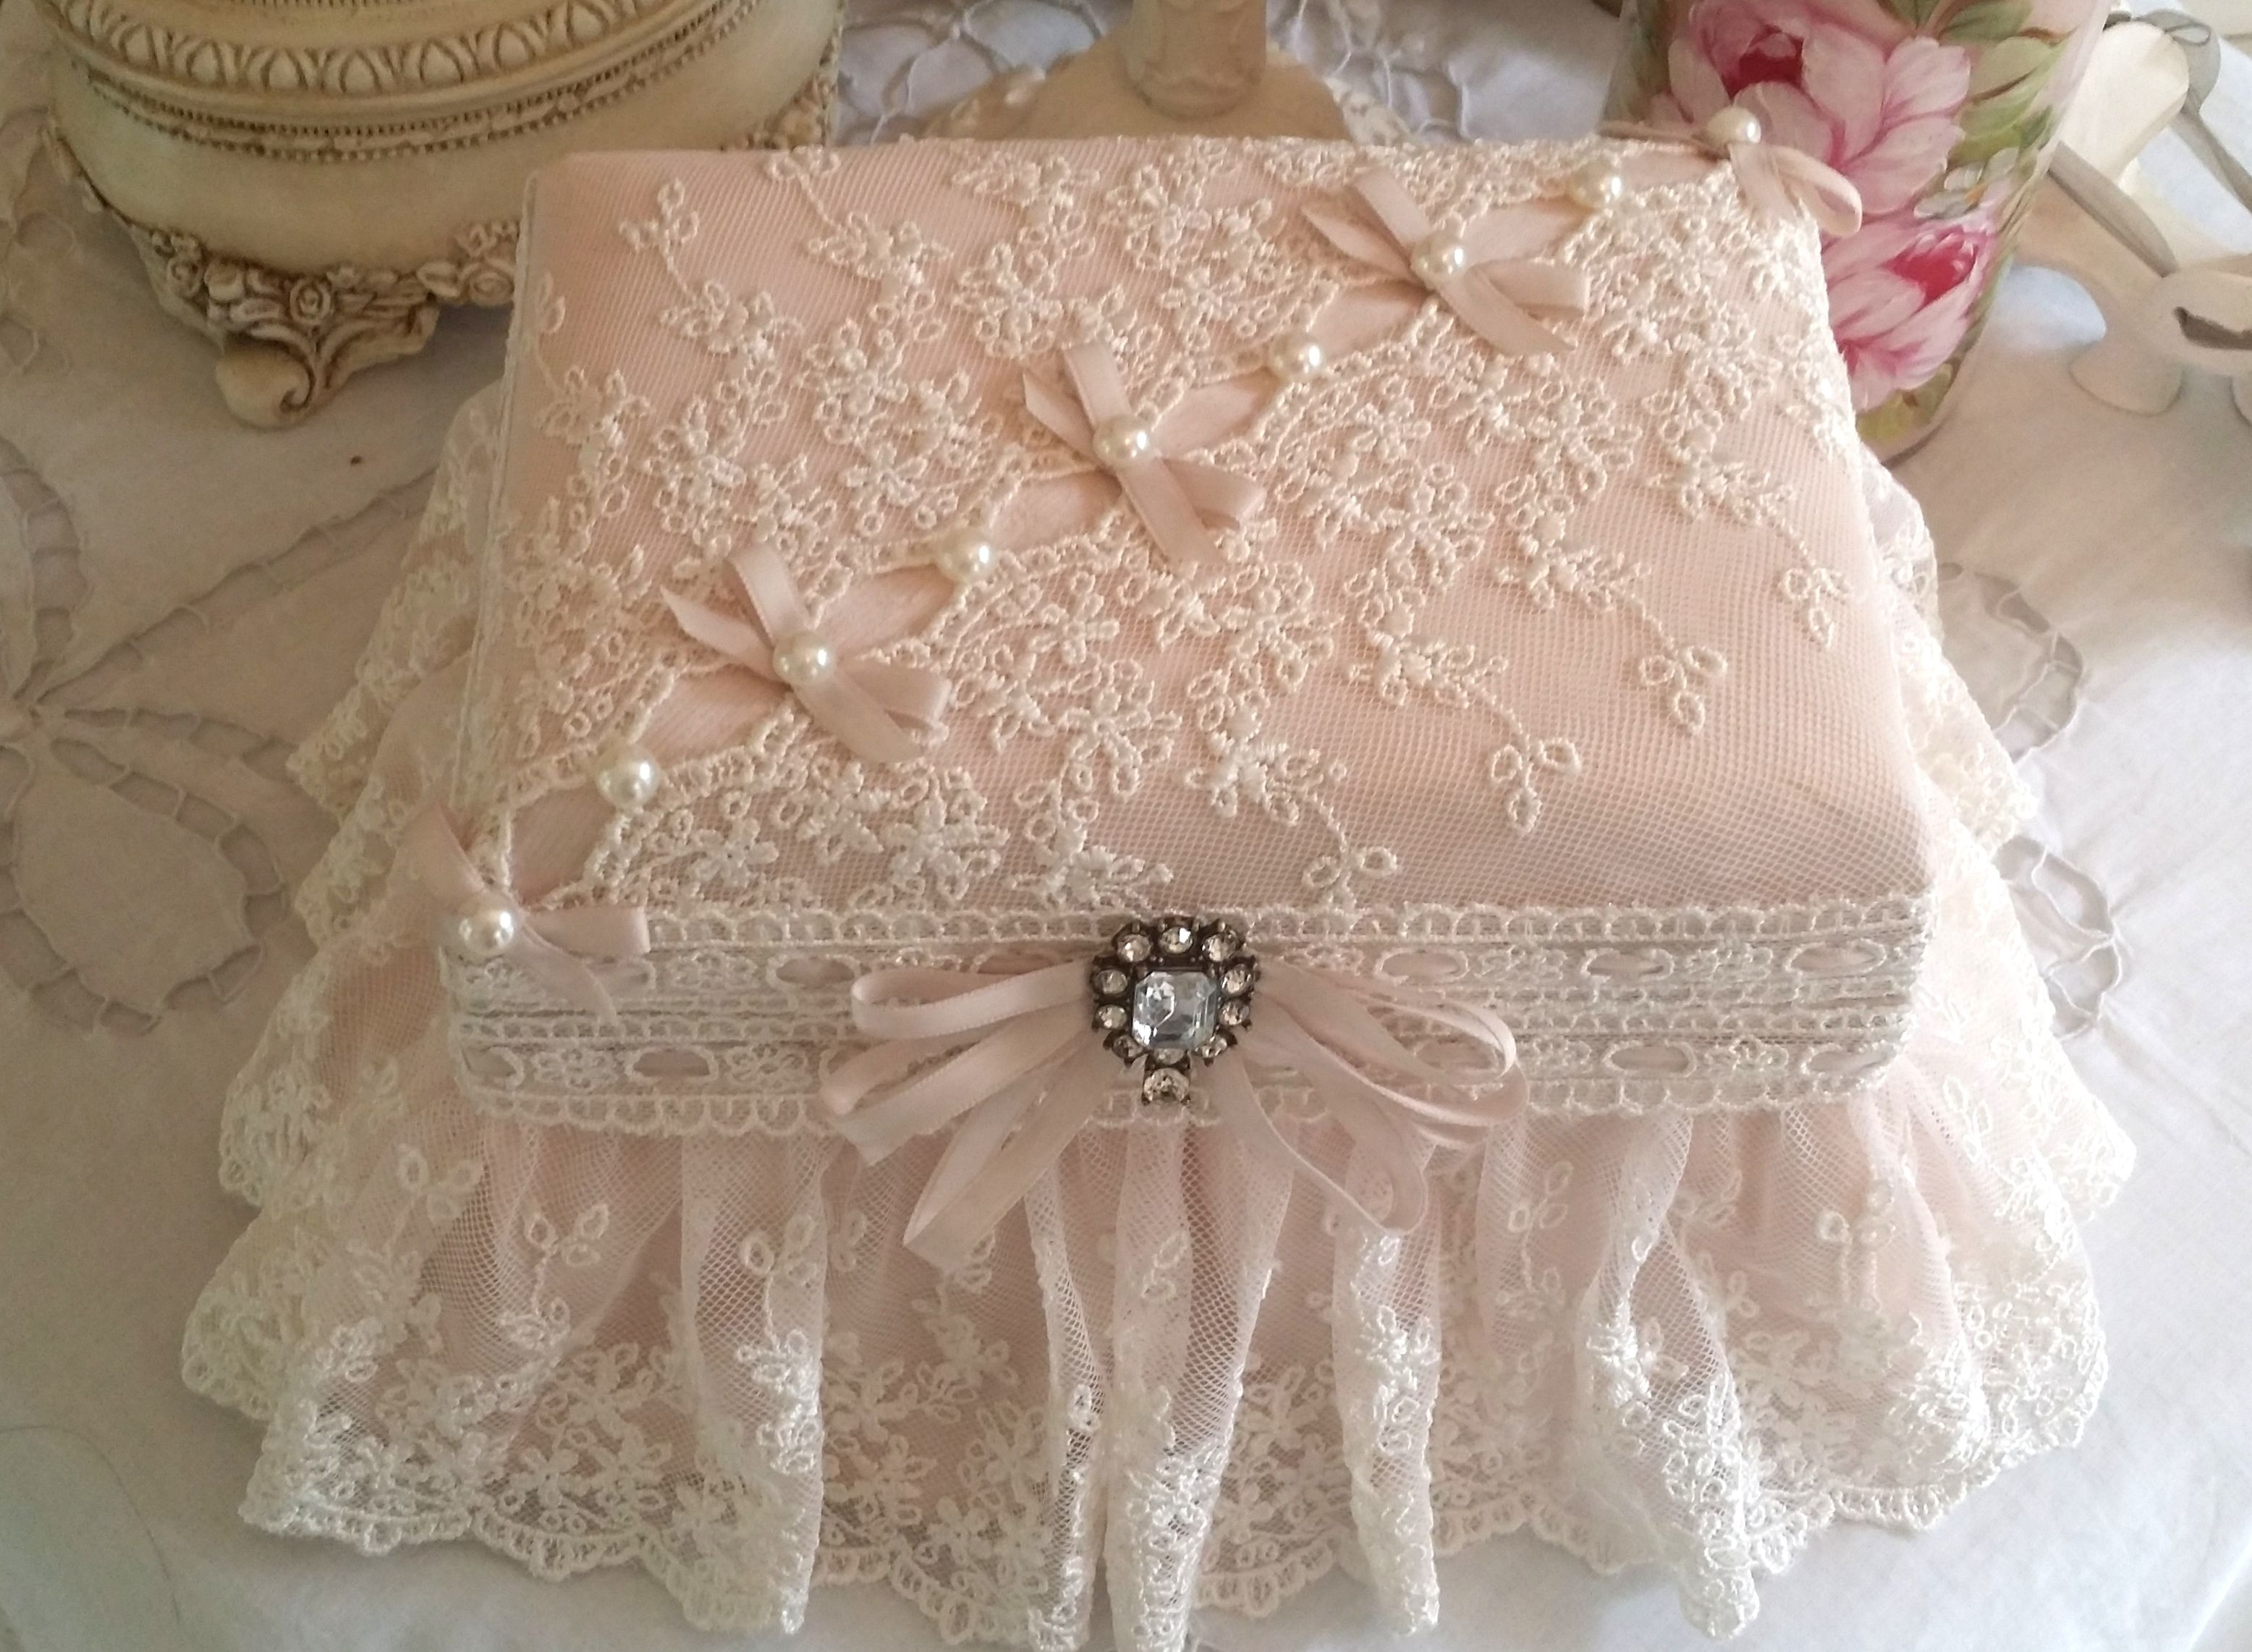 Pin by victoria oukane on craft ideas pinterest shabby box and